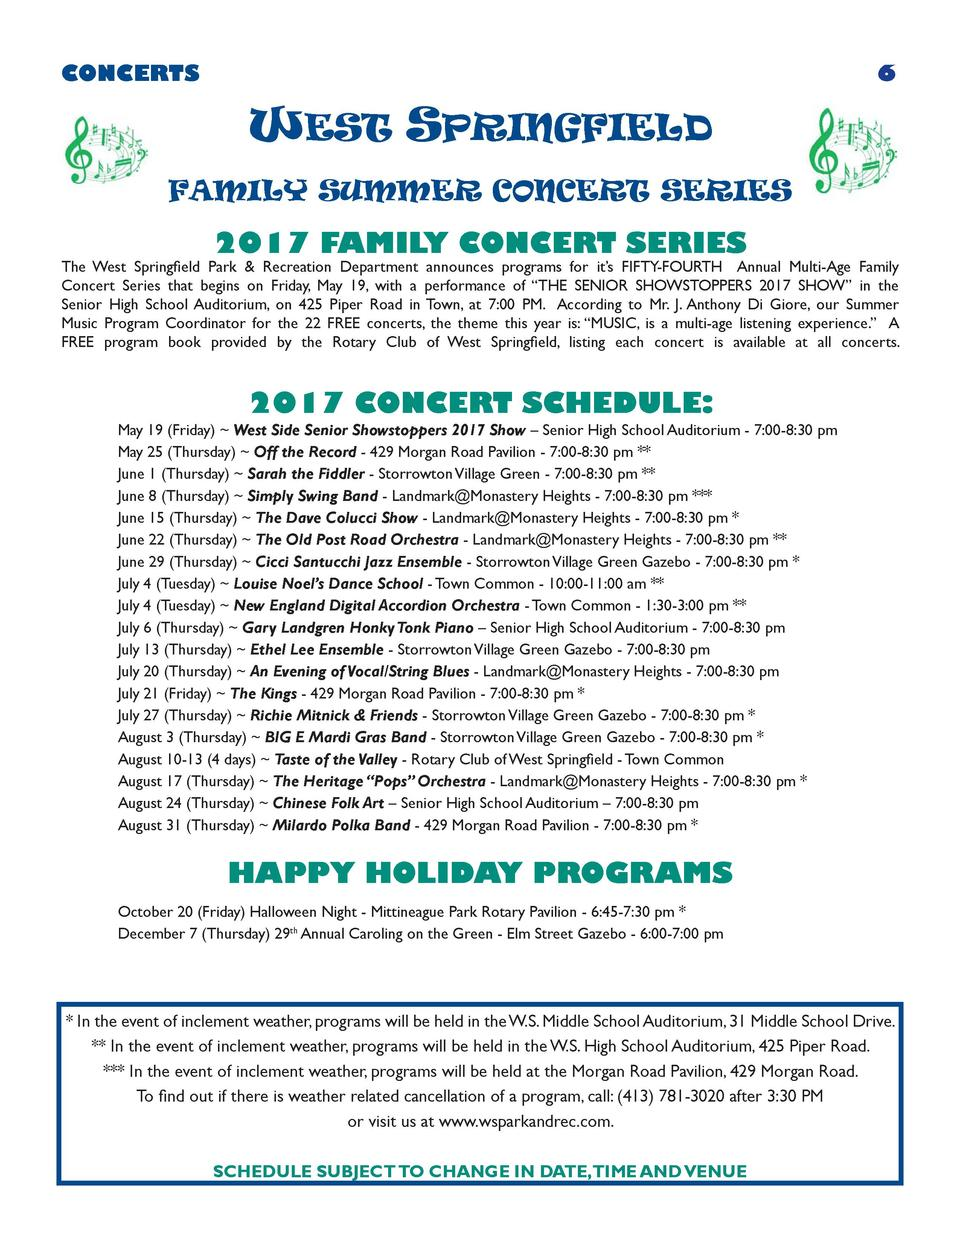 CONCERTS  6  WEST SPRINGFIELD FAMILY SUMMER CONCERT SERIES  2017 FAMILY CONCERT SERIES  The West Springfield Park   Recrea...